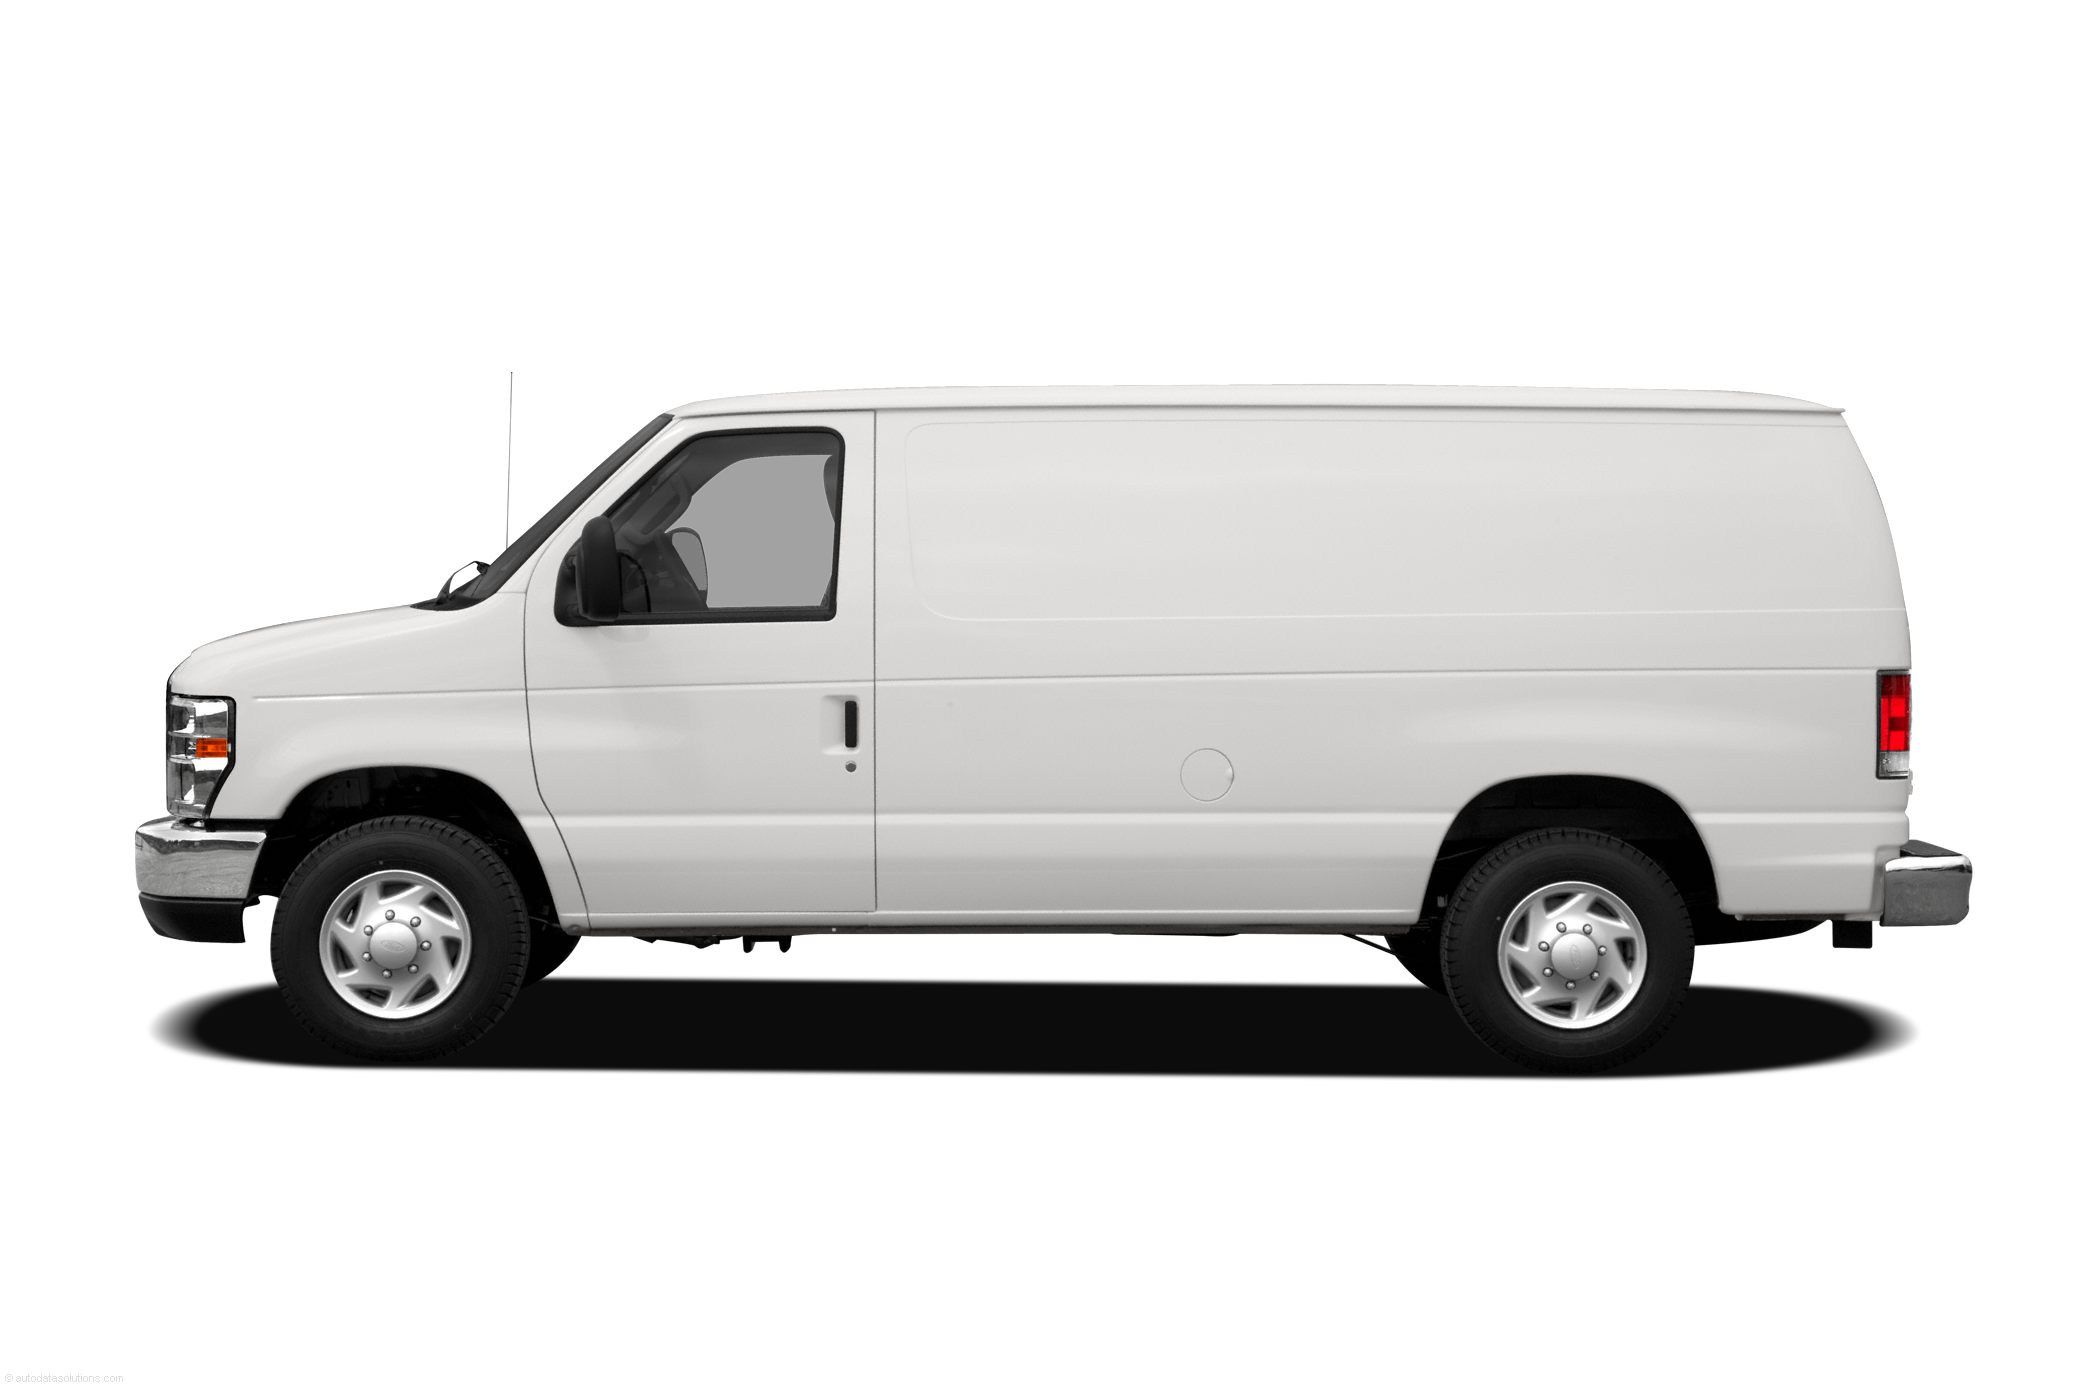 Van Insurance Rates Now Quoted For Ford Chevy And Dodge